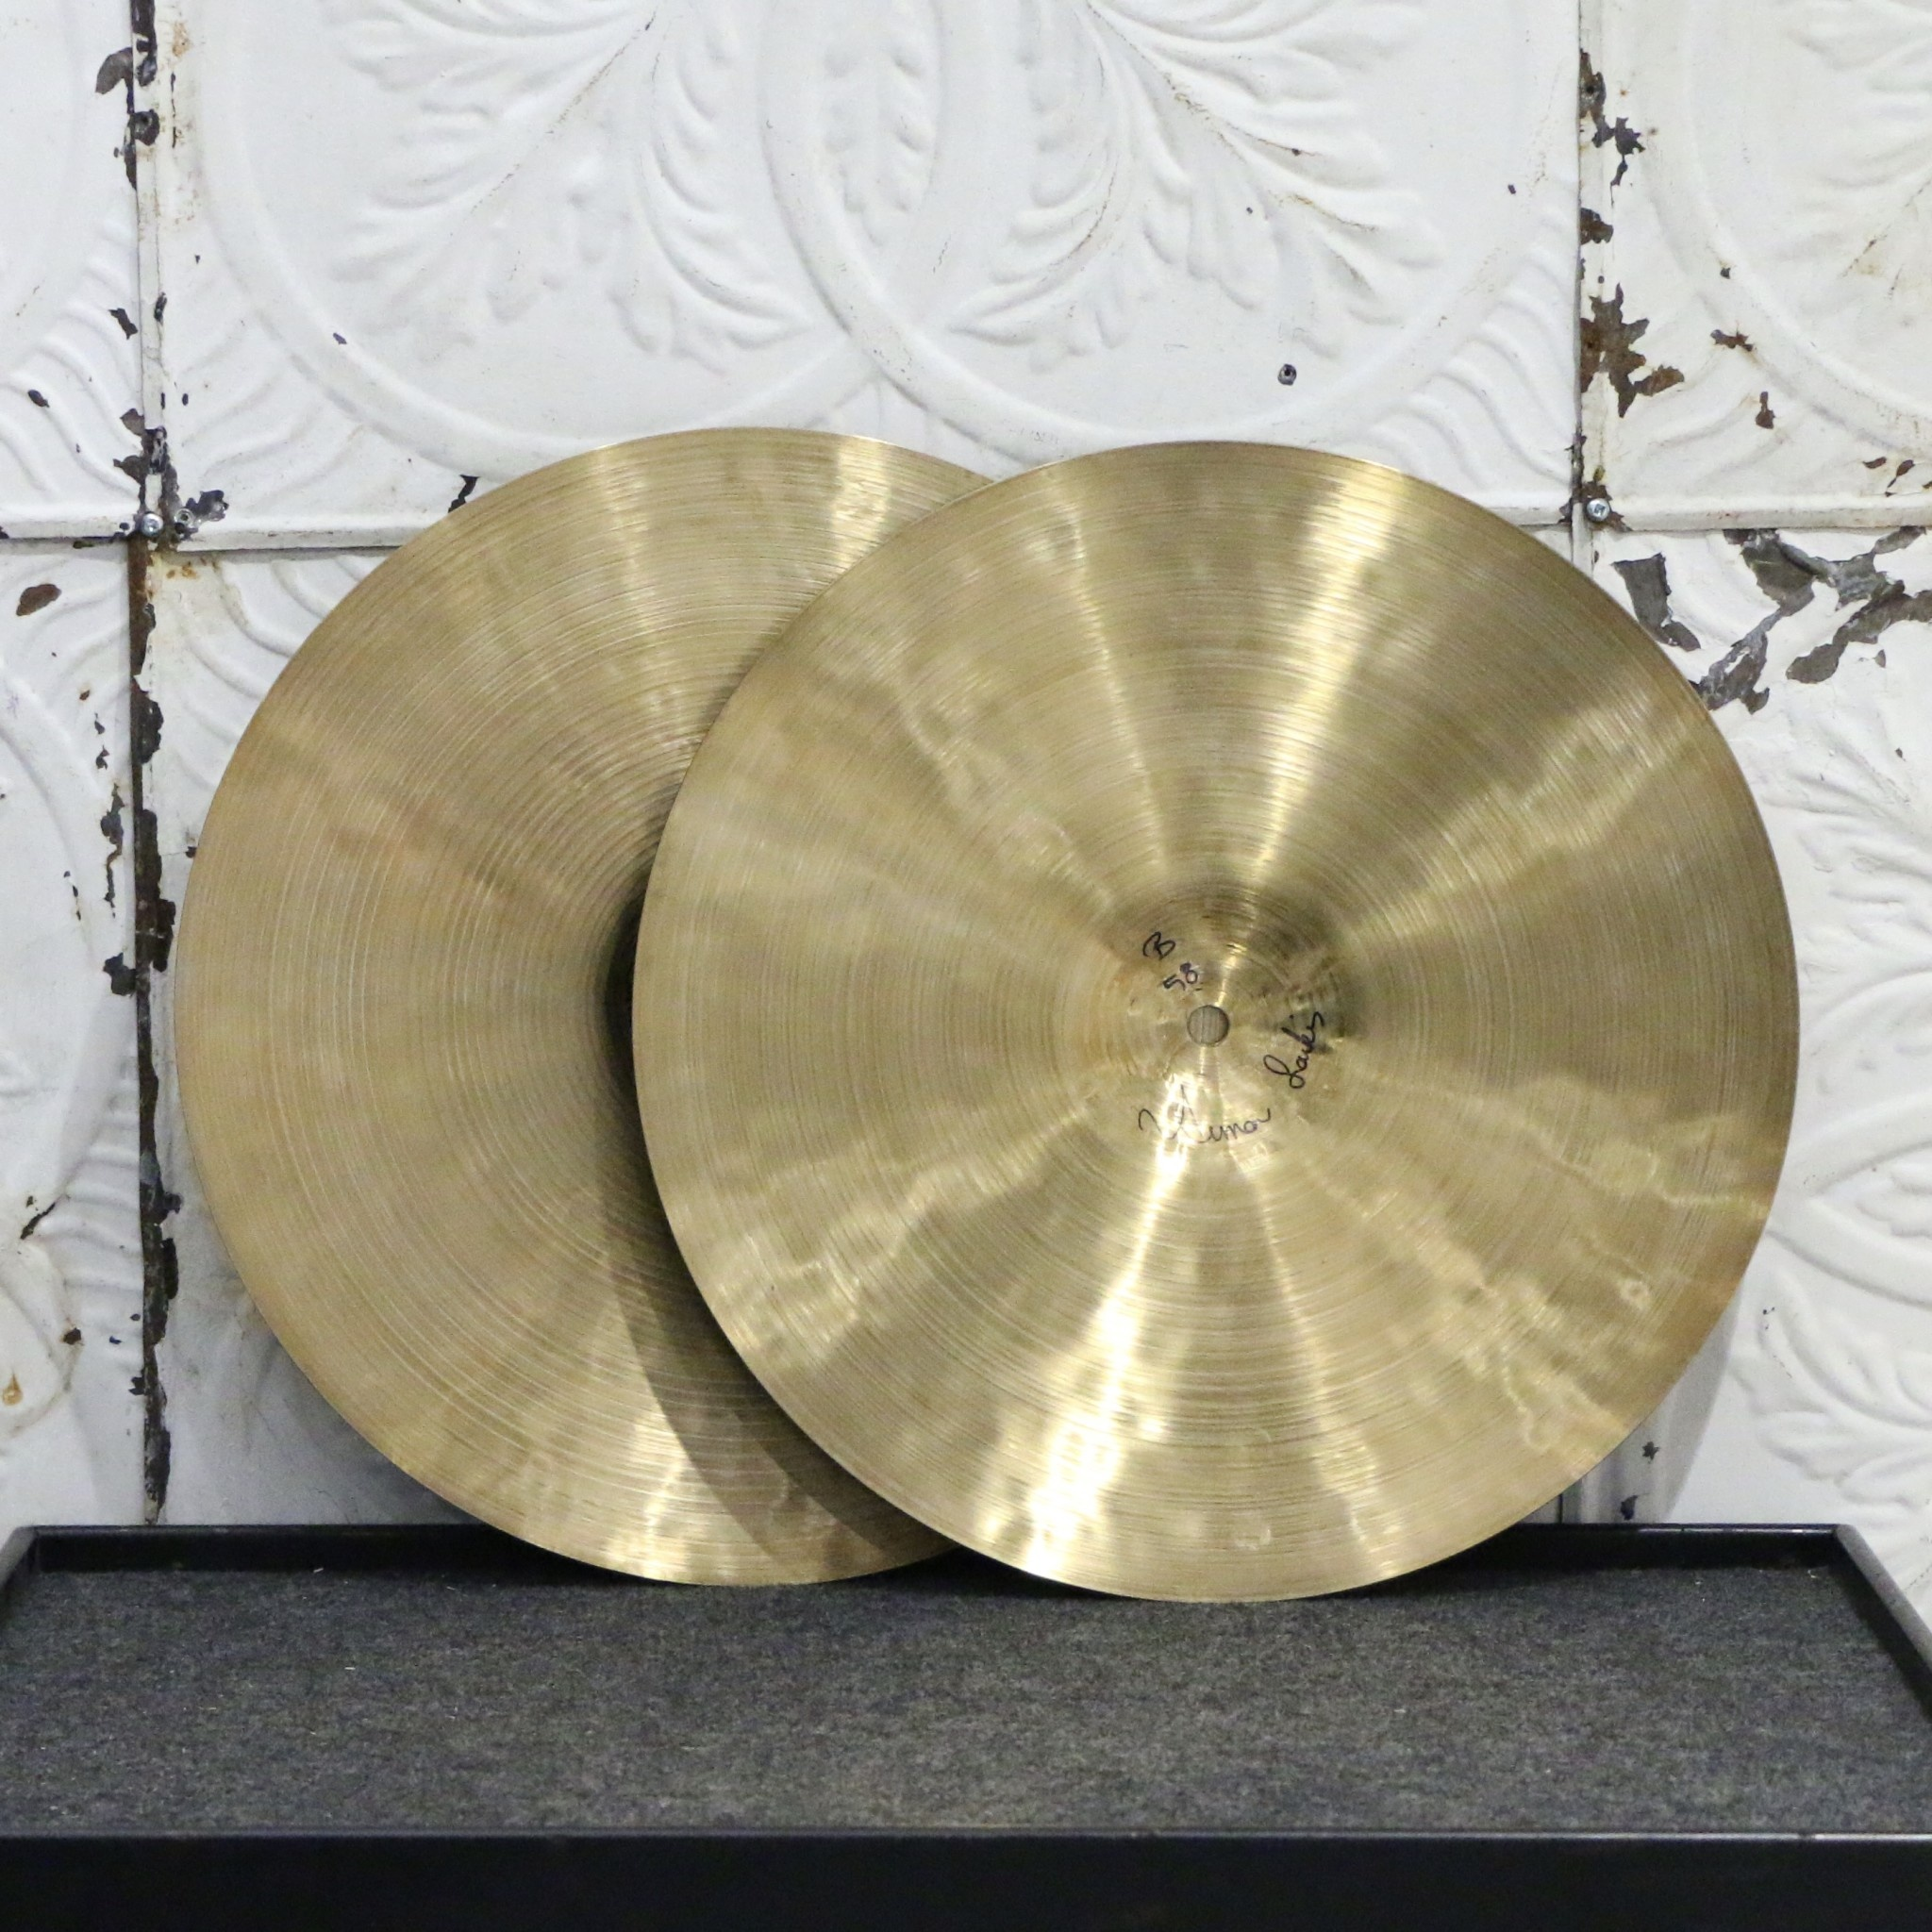 Istanbul Agop Istanbul Agop 30th Anniversary Hi Hat Cymbals 15in (960/1164g)